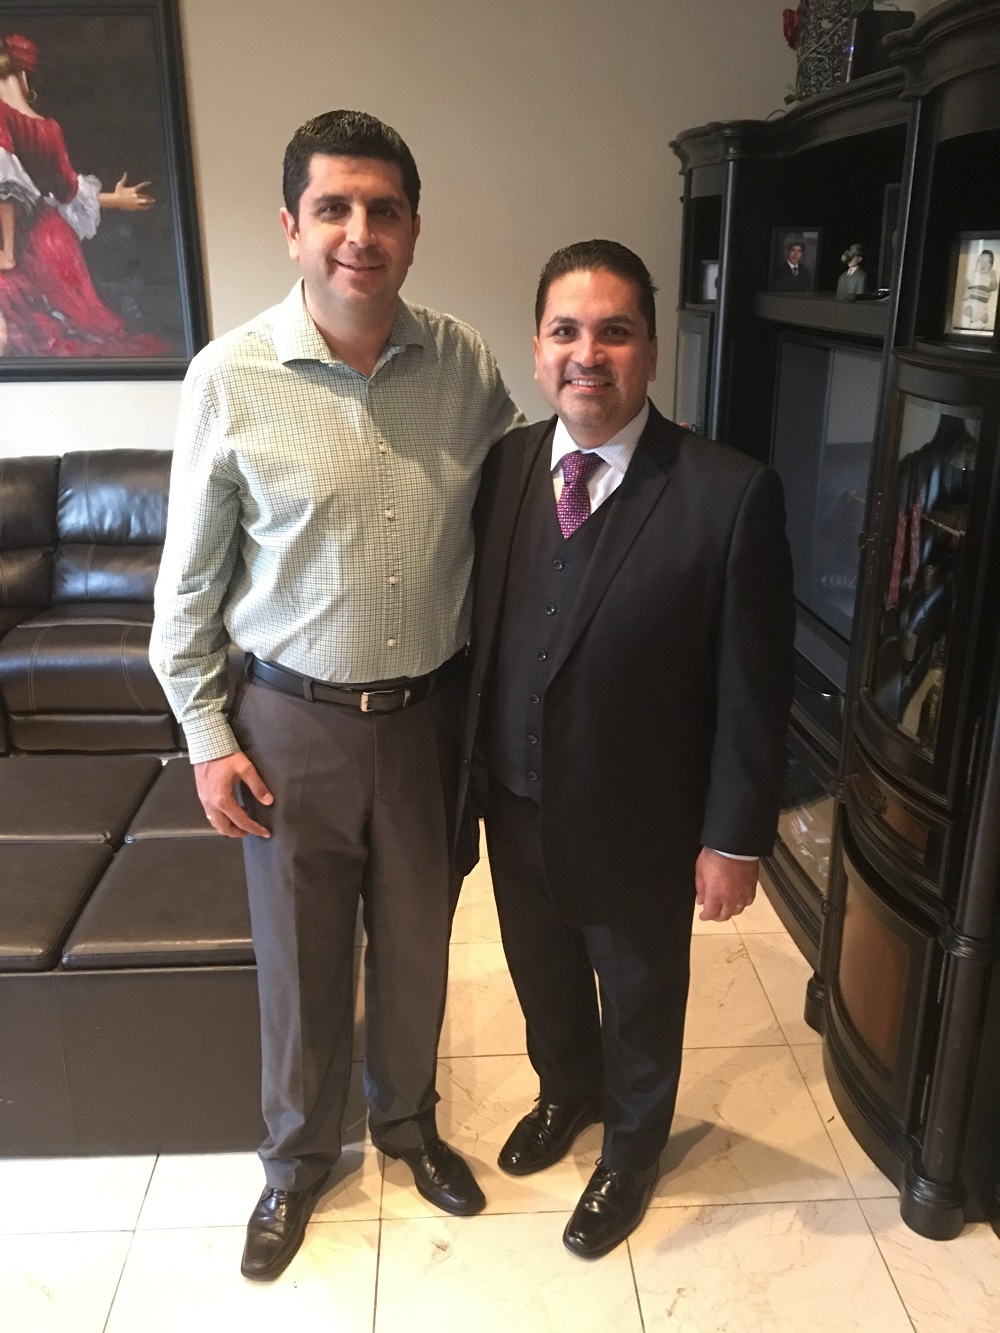 Efrain Aceves, right, with Lino Bastida Gutierrez, an attorney from Mexico.